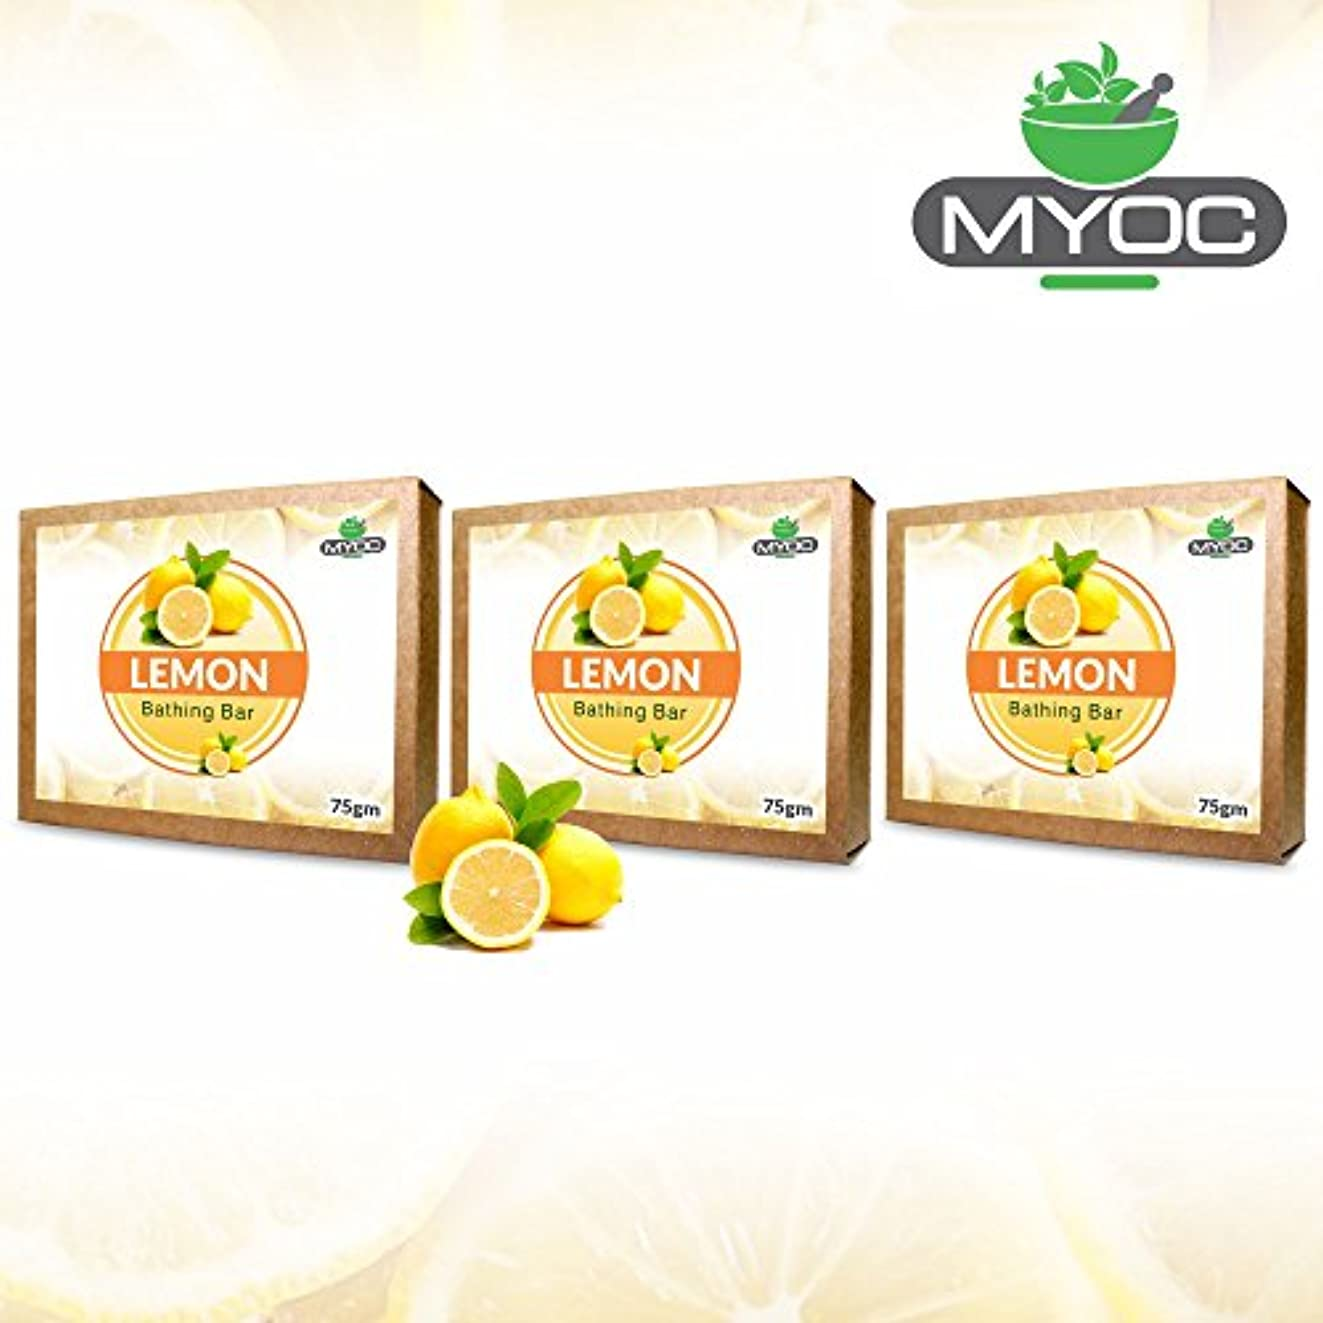 時計回りトラクタージェームズダイソンLemon Oil And Vitamin E Astringent Soap, deodorant, antiseptic soap for clogged pores and acne prone skin 75g...